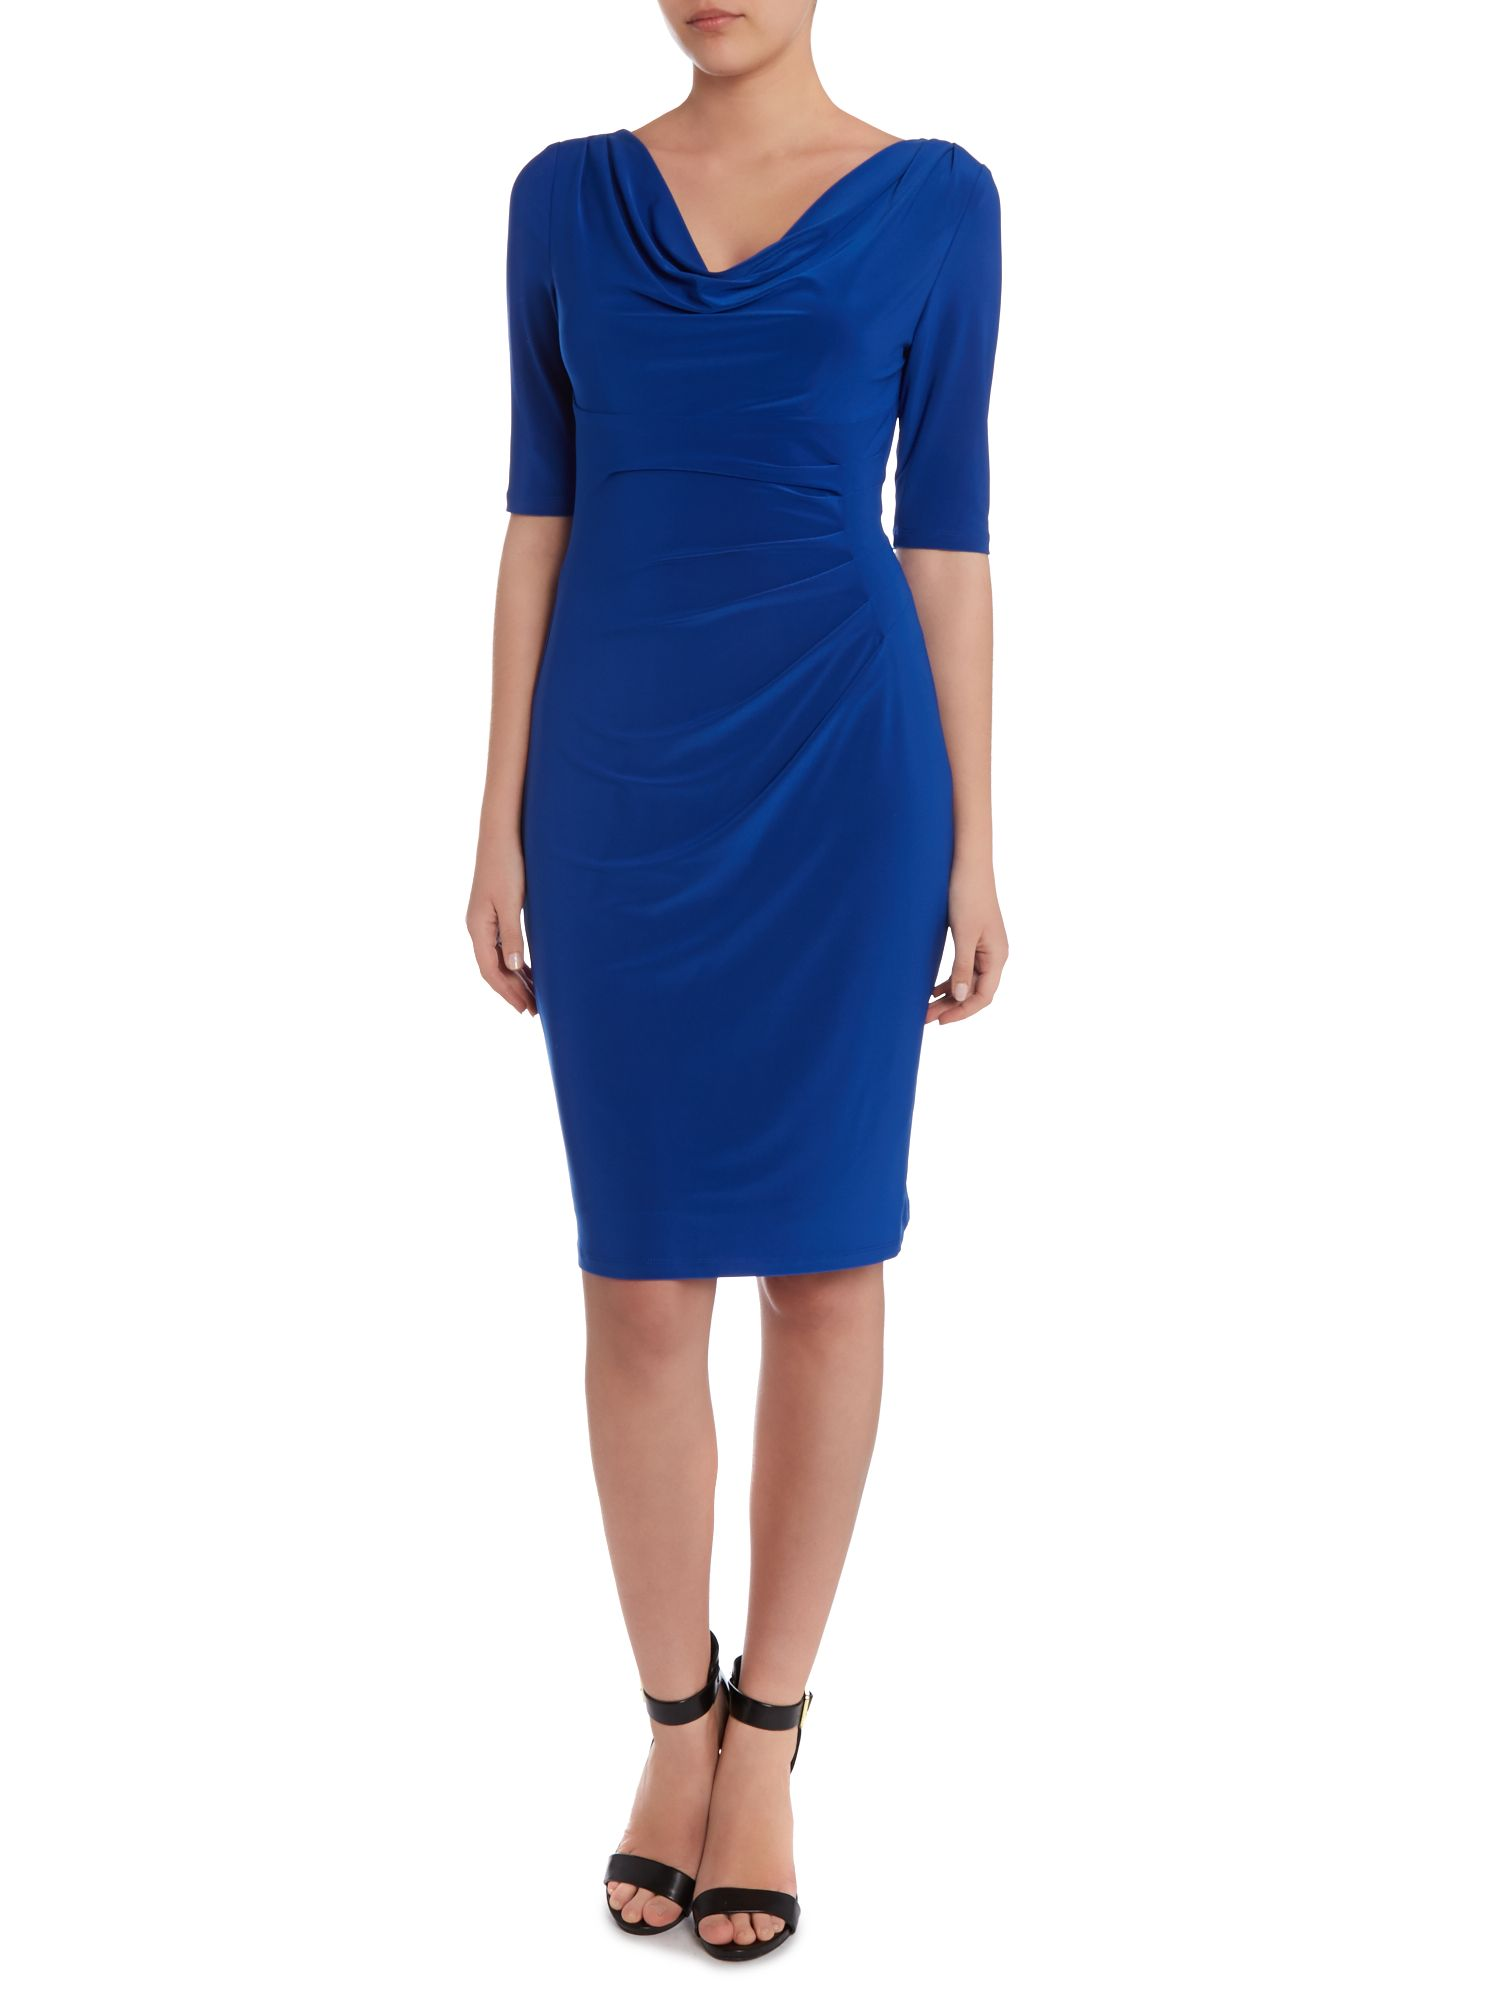 Cowl neck dress with drop waist